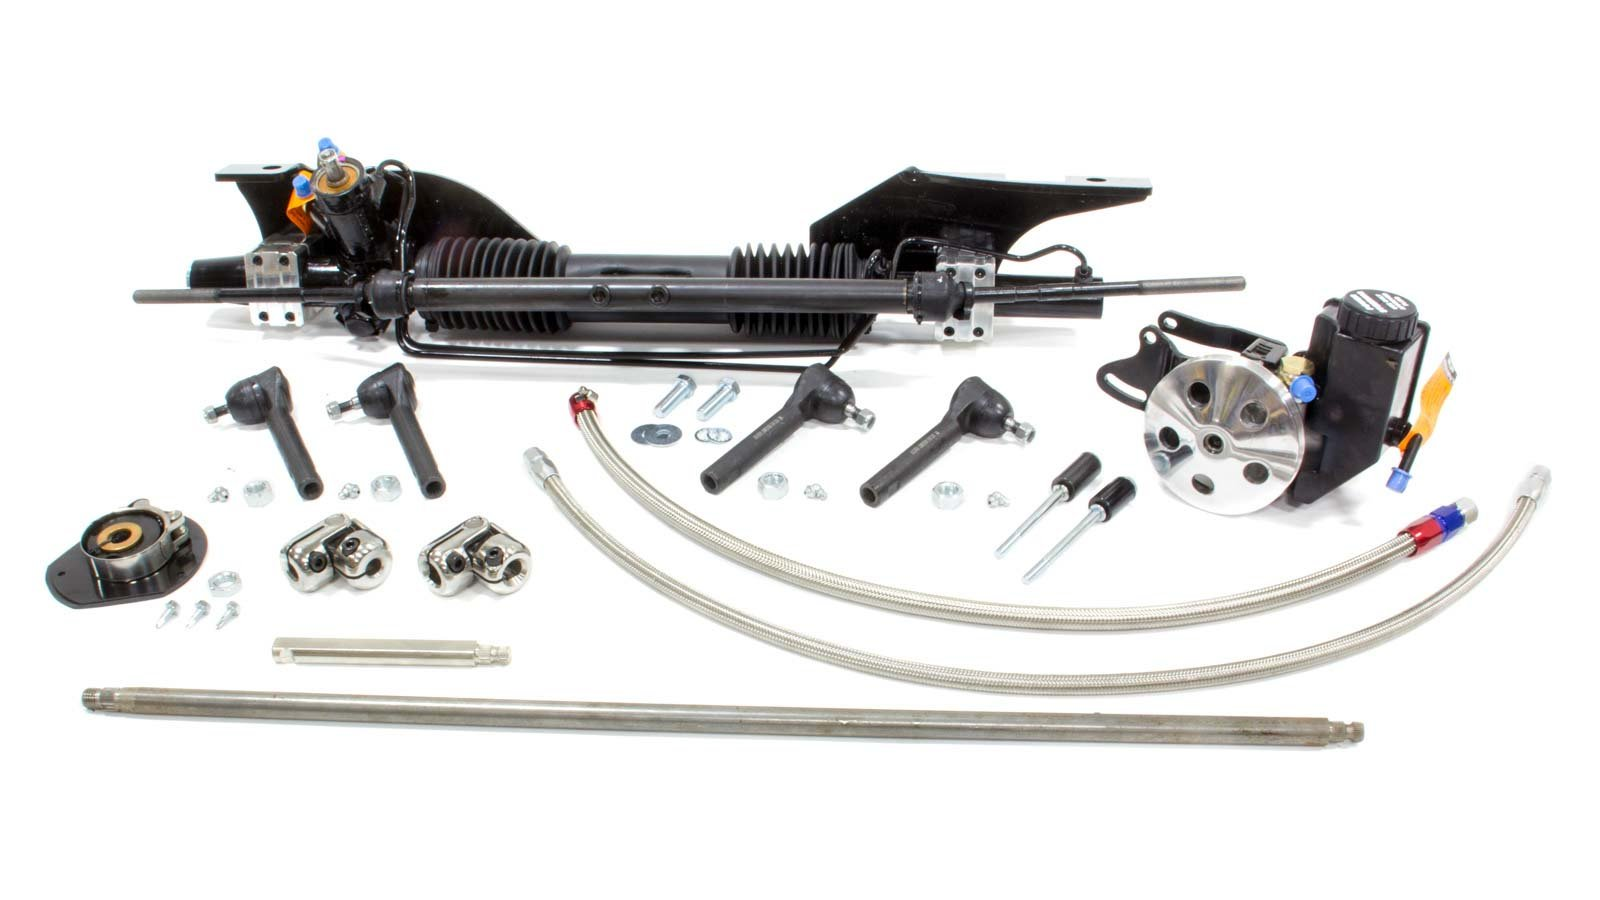 Unisteer 8010890-01 Power Rack and Pinion Kit for Ford Mustang